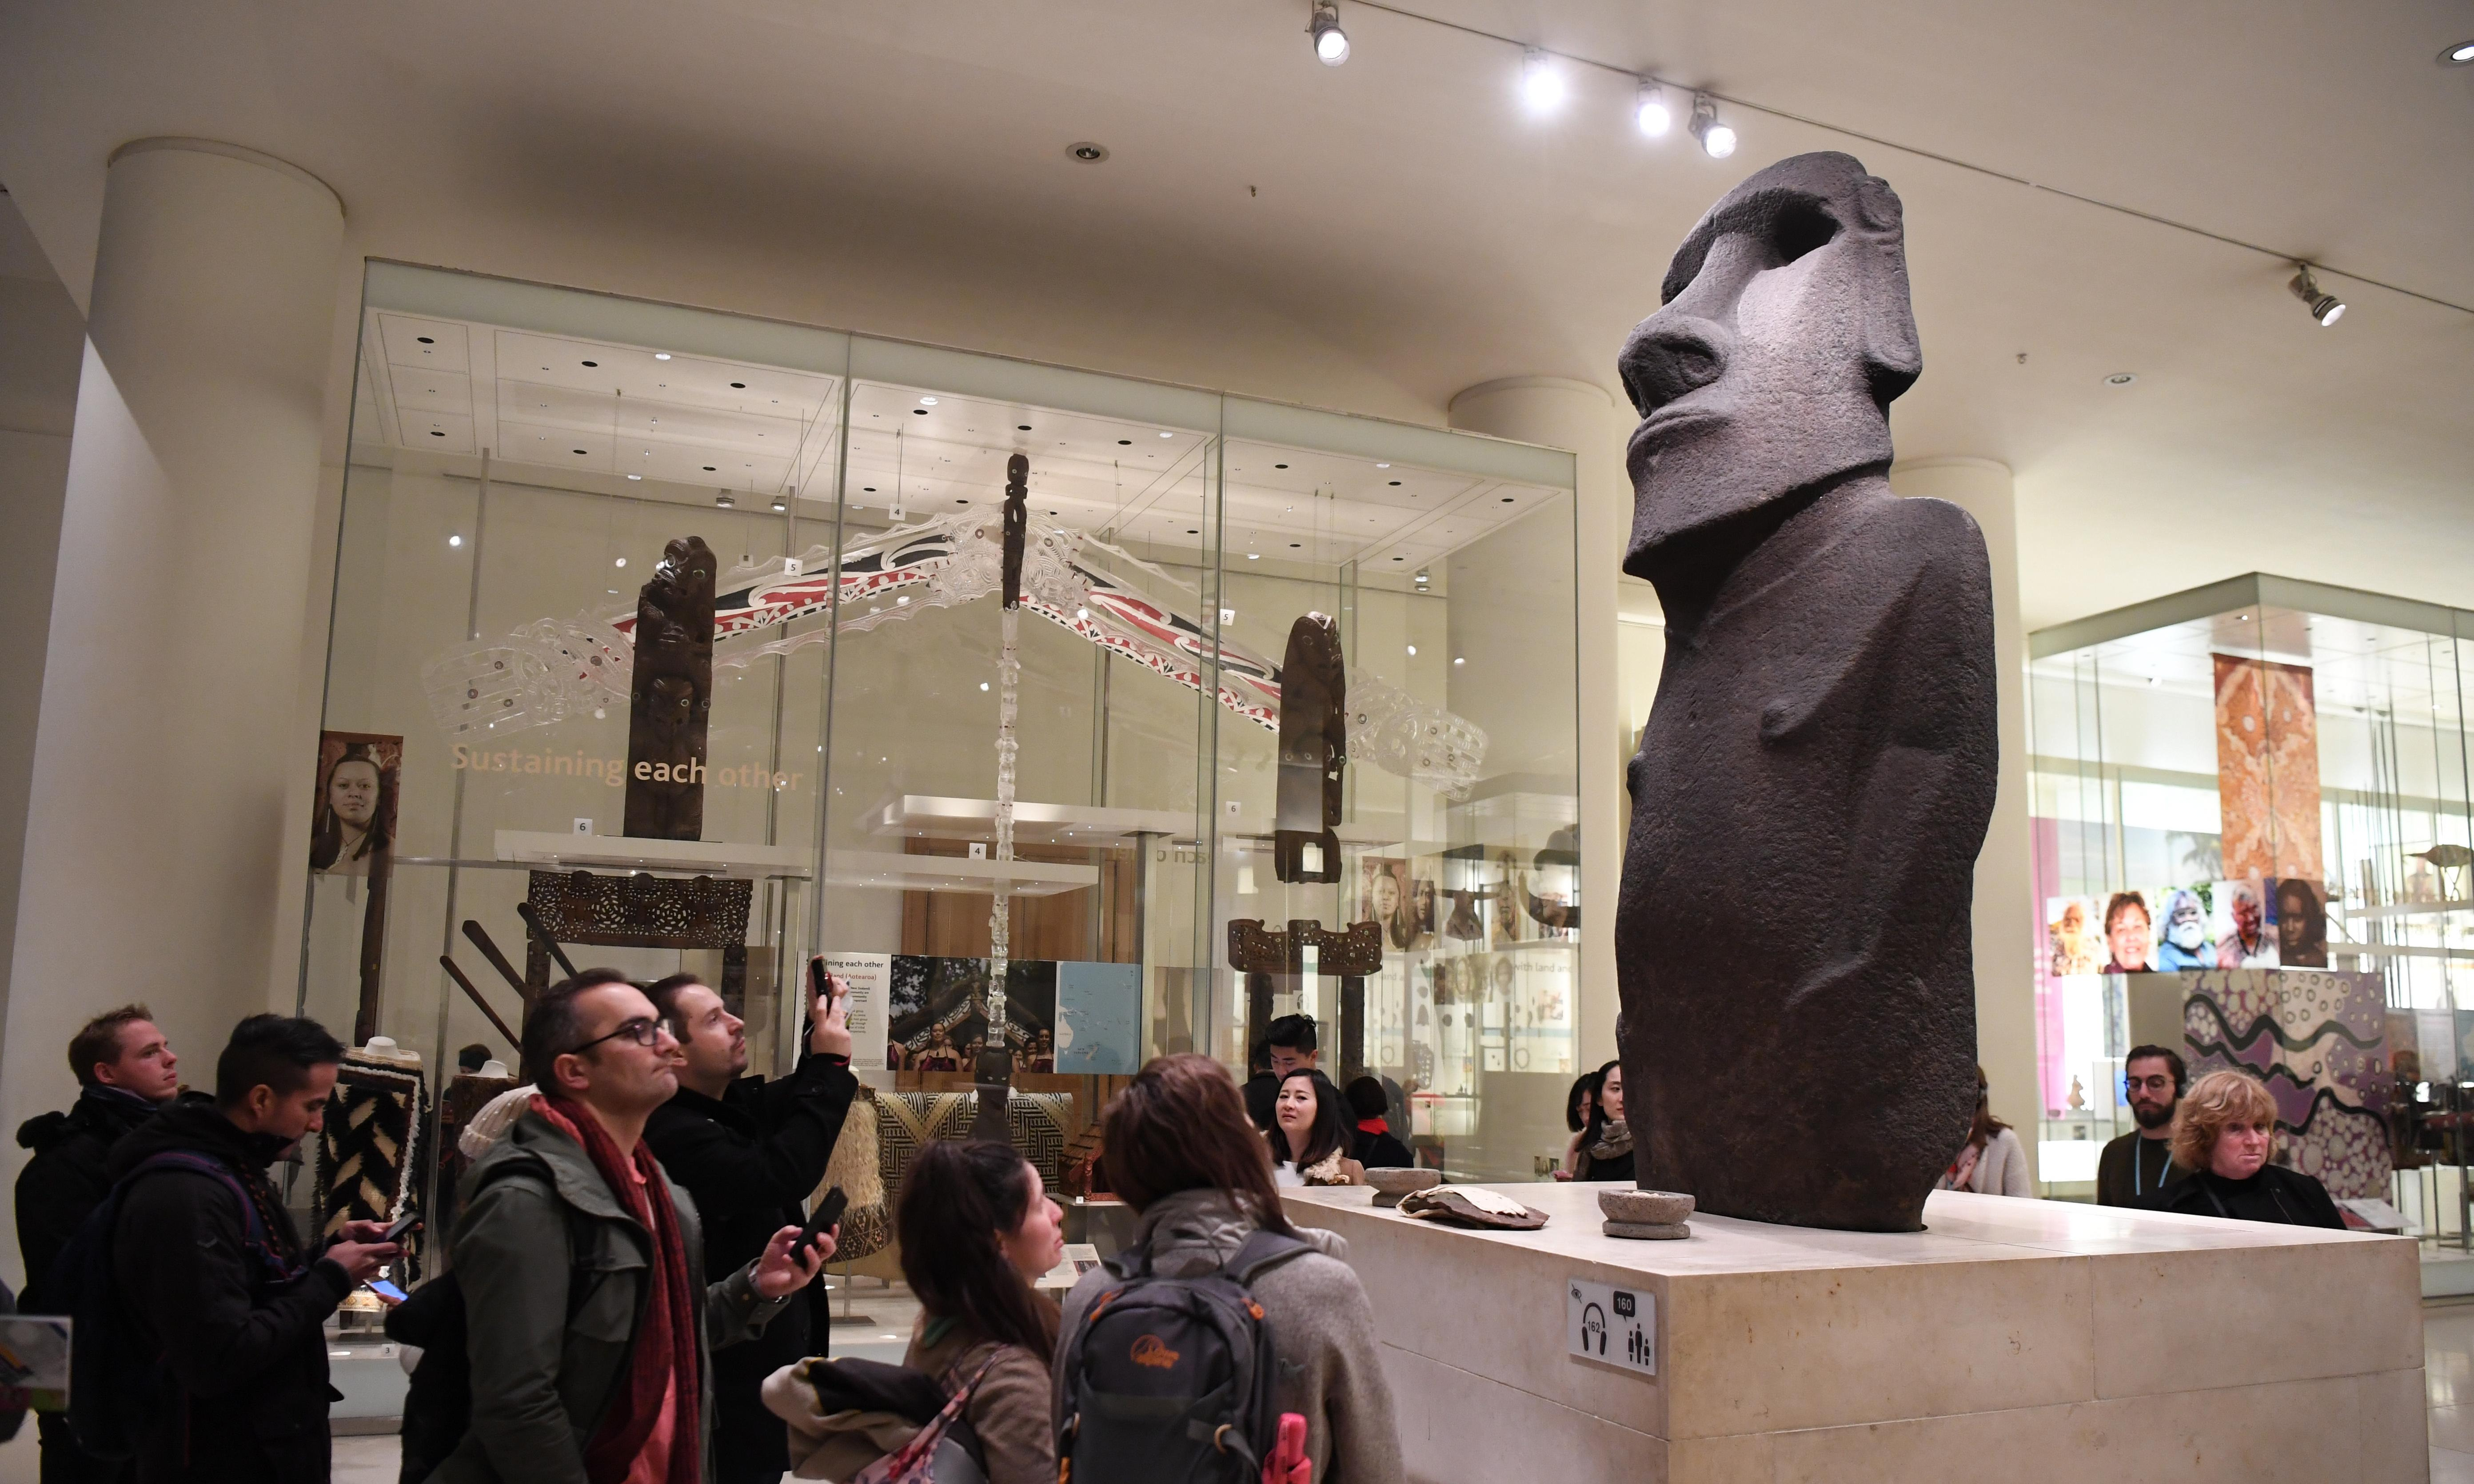 Give the Easter Islanders their statue back – it doesn't belong in the British Museum